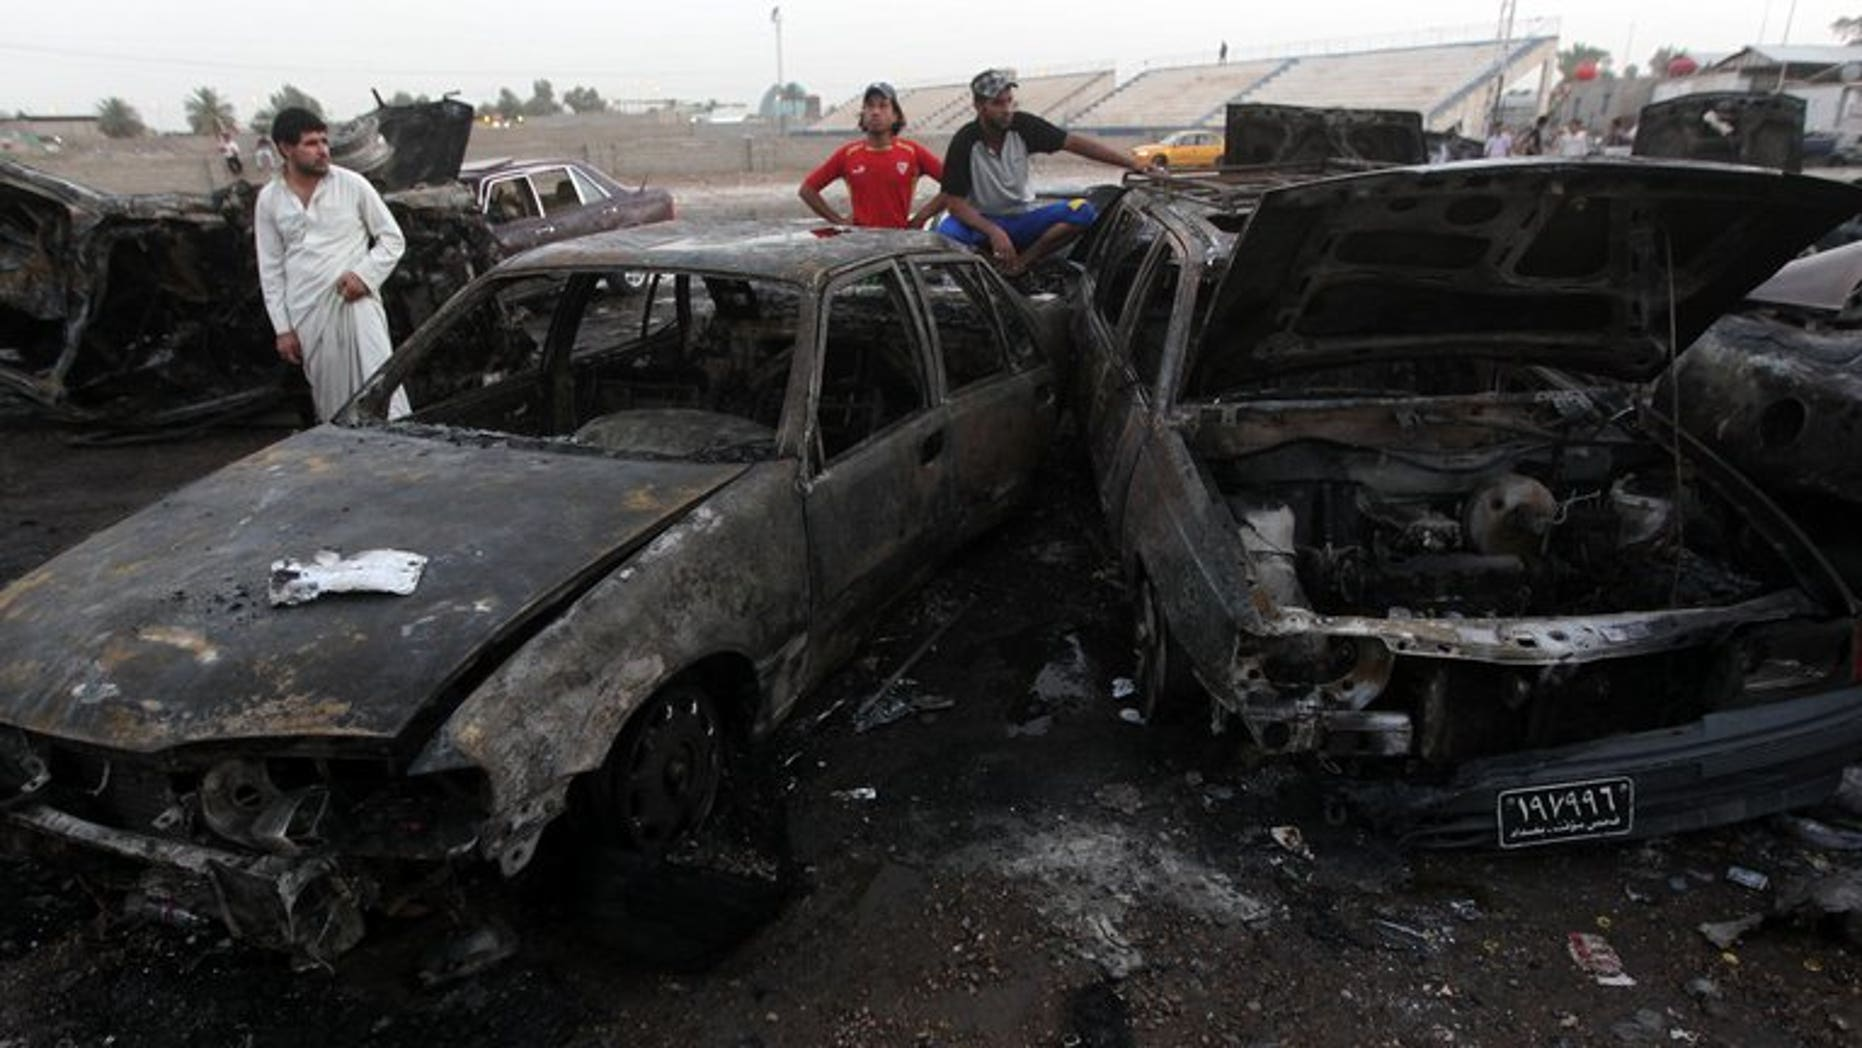 Iraqi men gather at the scene of one of a car bomb that exploded in Baghdad's Habibiyah area on May 27, 2013. More than 1,500 people were killed in Iraq in the past three months, twice the previous quarter's figure, fanning fears the politically-deadlocked country is slipping back into all-out bloodshed.